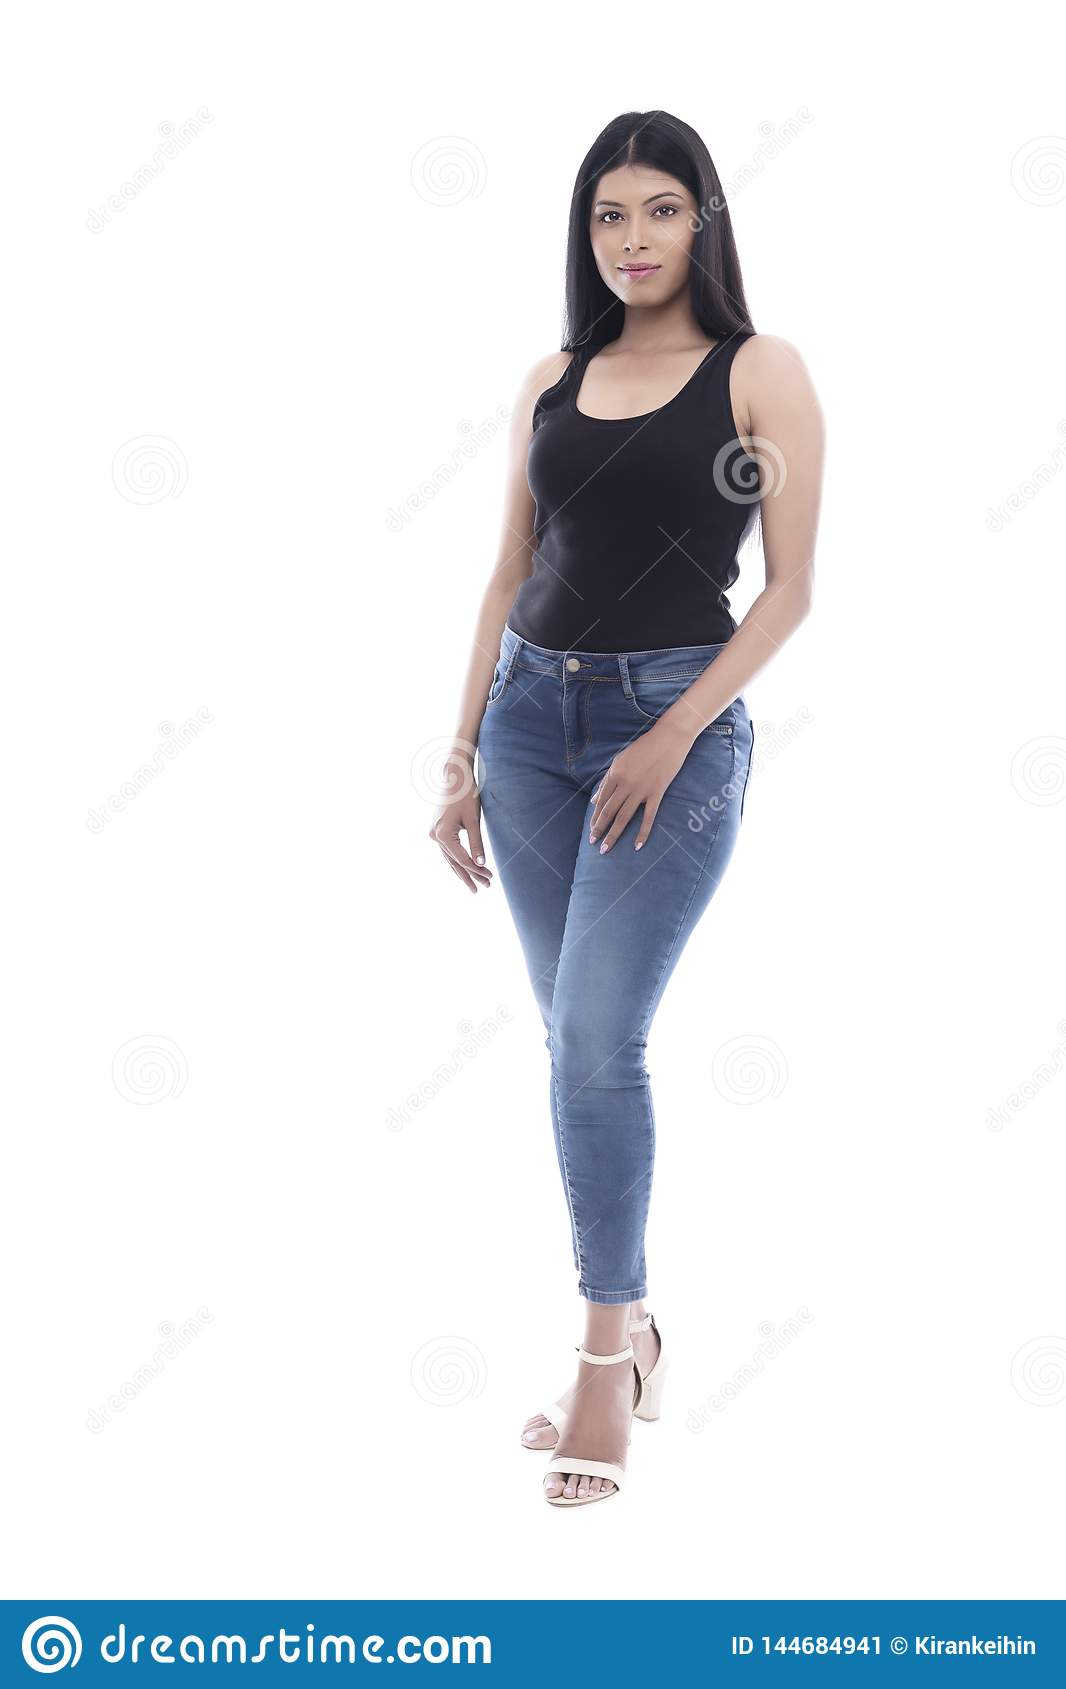 Indian Young girl in blue jeans and black camisole